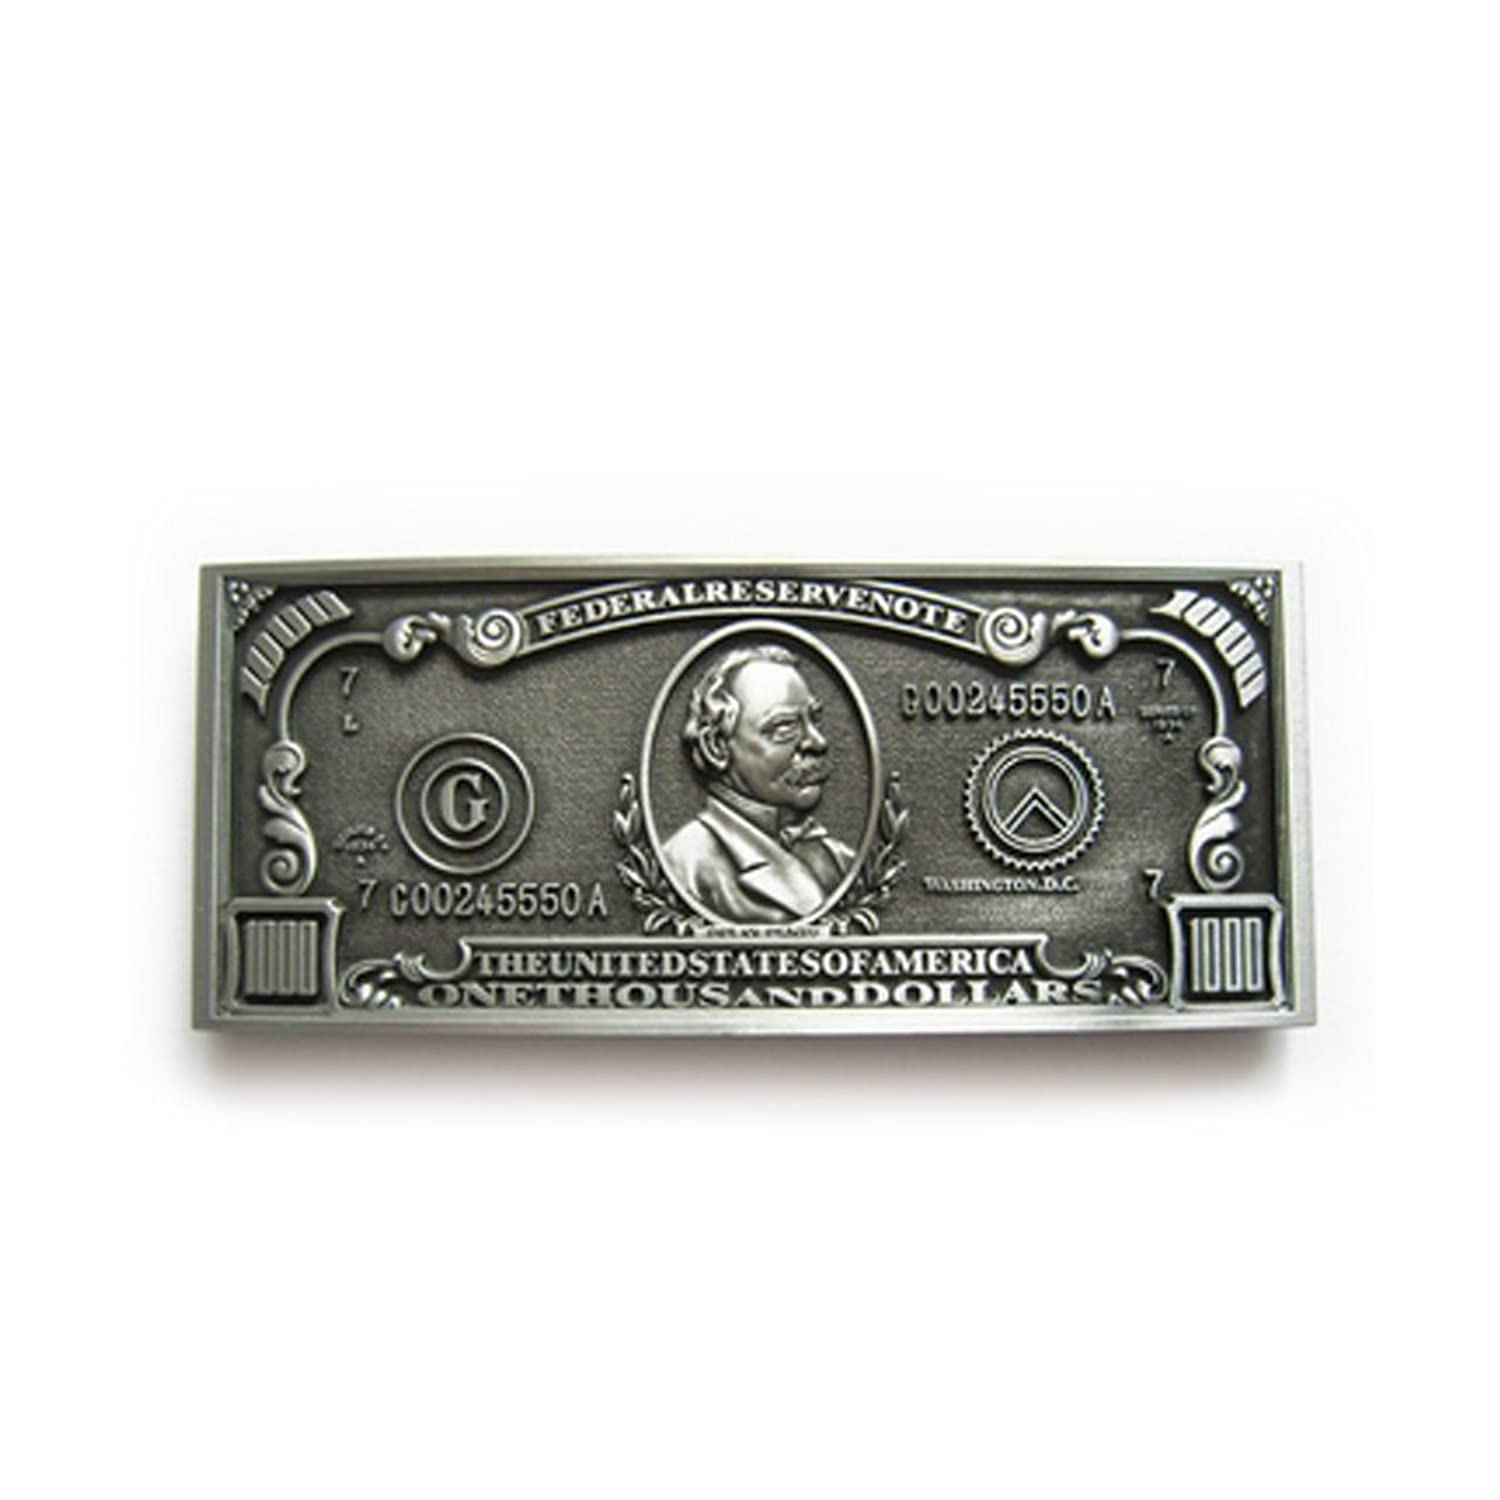 eeddoo® Gürtelschnalle - 100 Dollar Note (Buckle für Wechselgürtel für Damen und Herren | Belt Frauen Männer Oldschool Rockabilly Metall Gothic Wave Rock Biker Western Trucker Casino Skull)